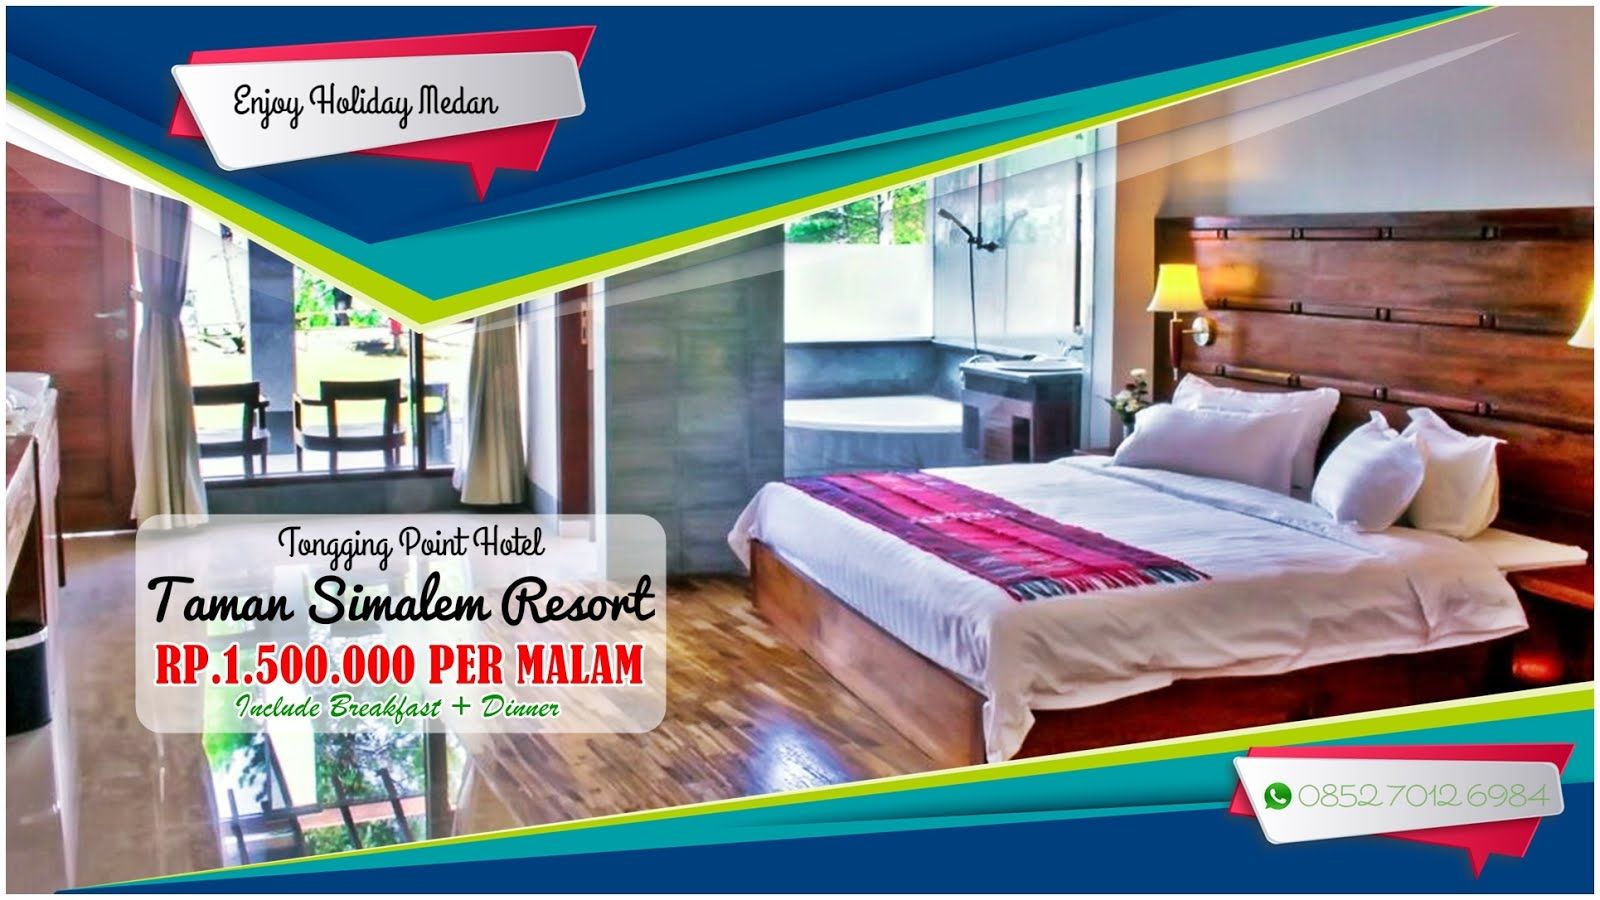 Promo Tongging Point Hotel Taman Simalem Resort